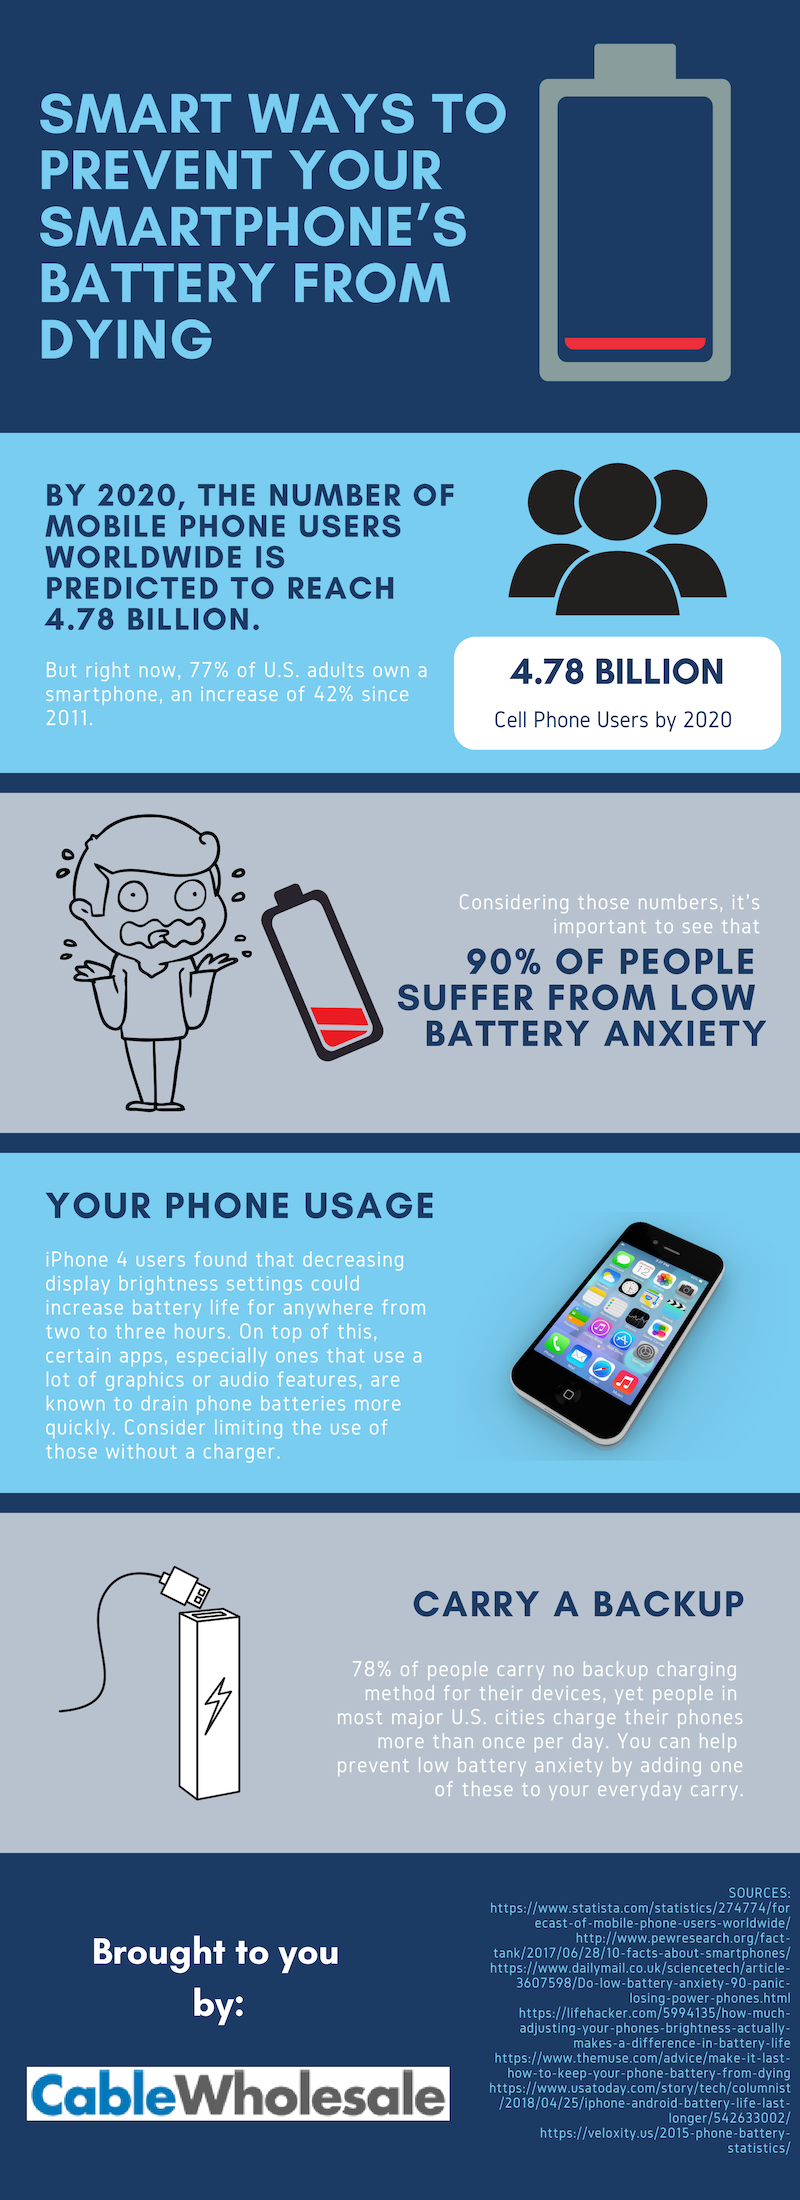 smart ways to prevent your smartphones battery from dying